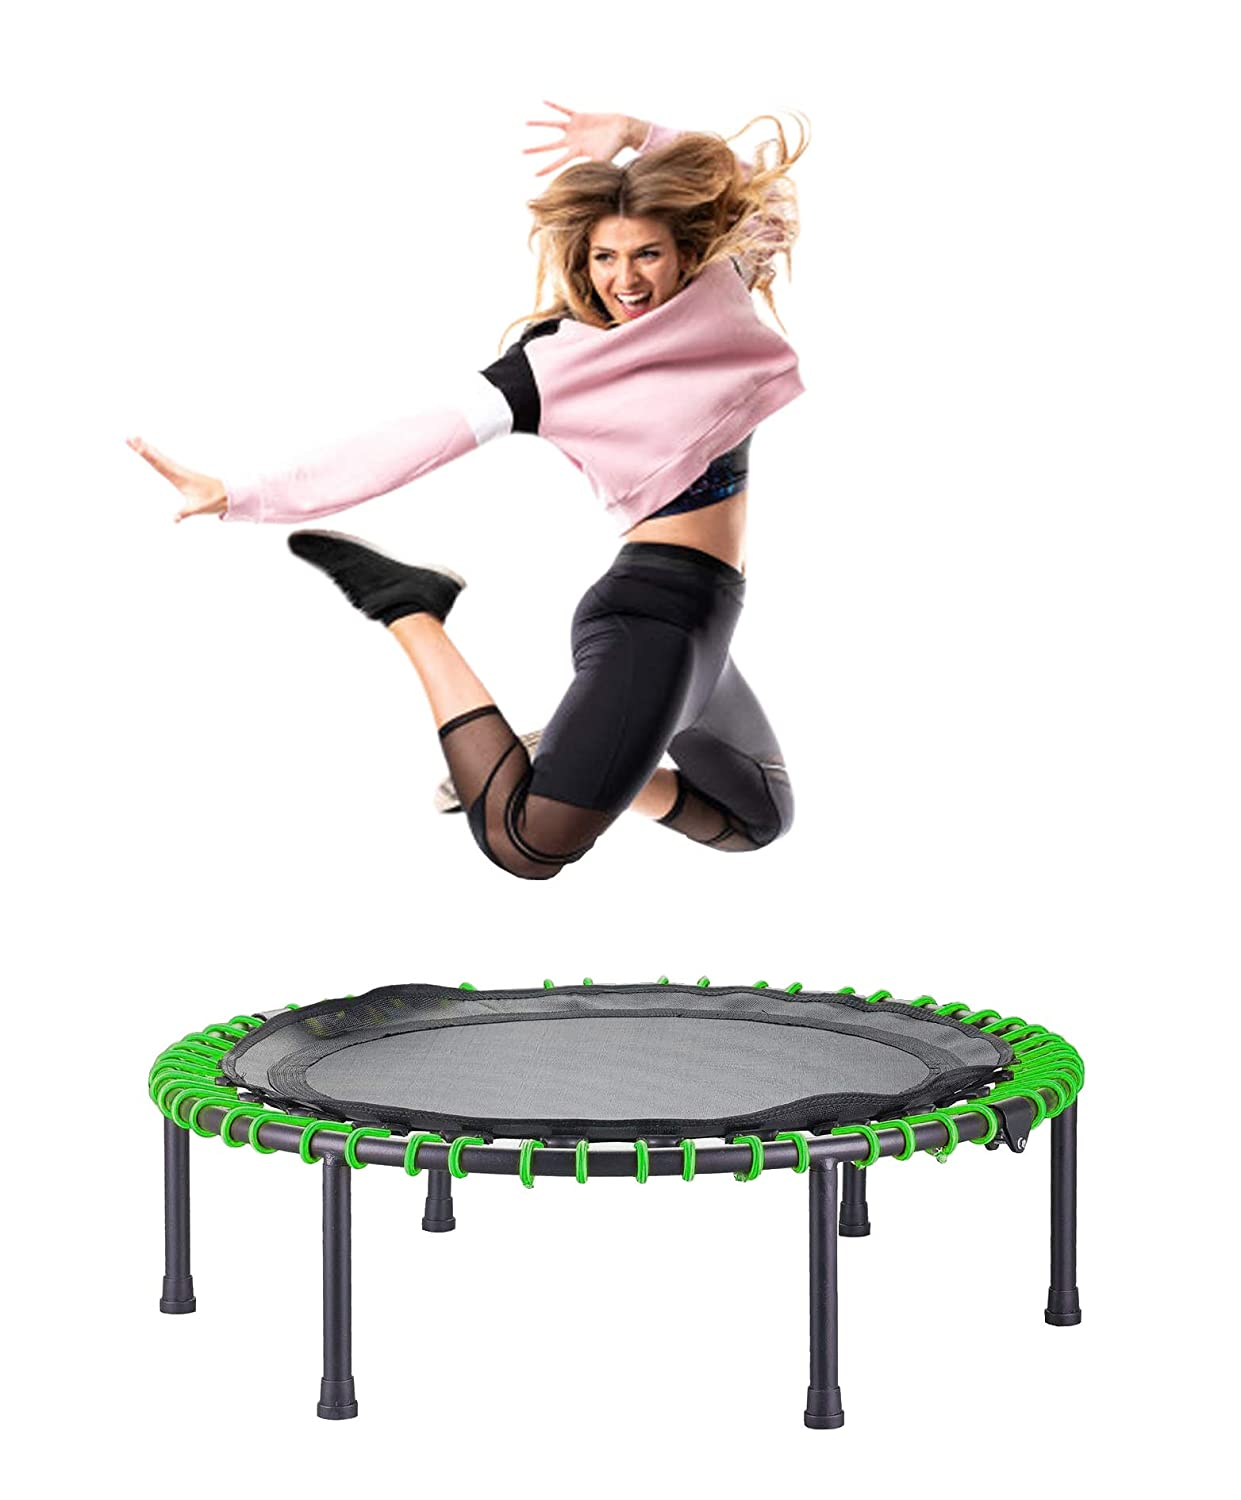 CASTOOL 40 Ultra Quiet Fitness Mini Trampoline Without Adjustable Handle,Safe Elastic Band Indoor Fitness Home Workout Cardio Training for Adults